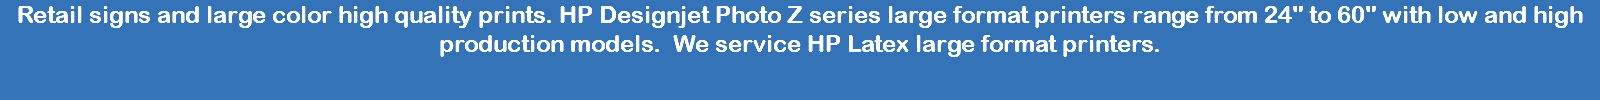 "Retail signs and large color high quality prints. HP Designjet Photo Z series large format printers range from 24"" to 60"" with low and high production models. We service HP Latex large format printers."